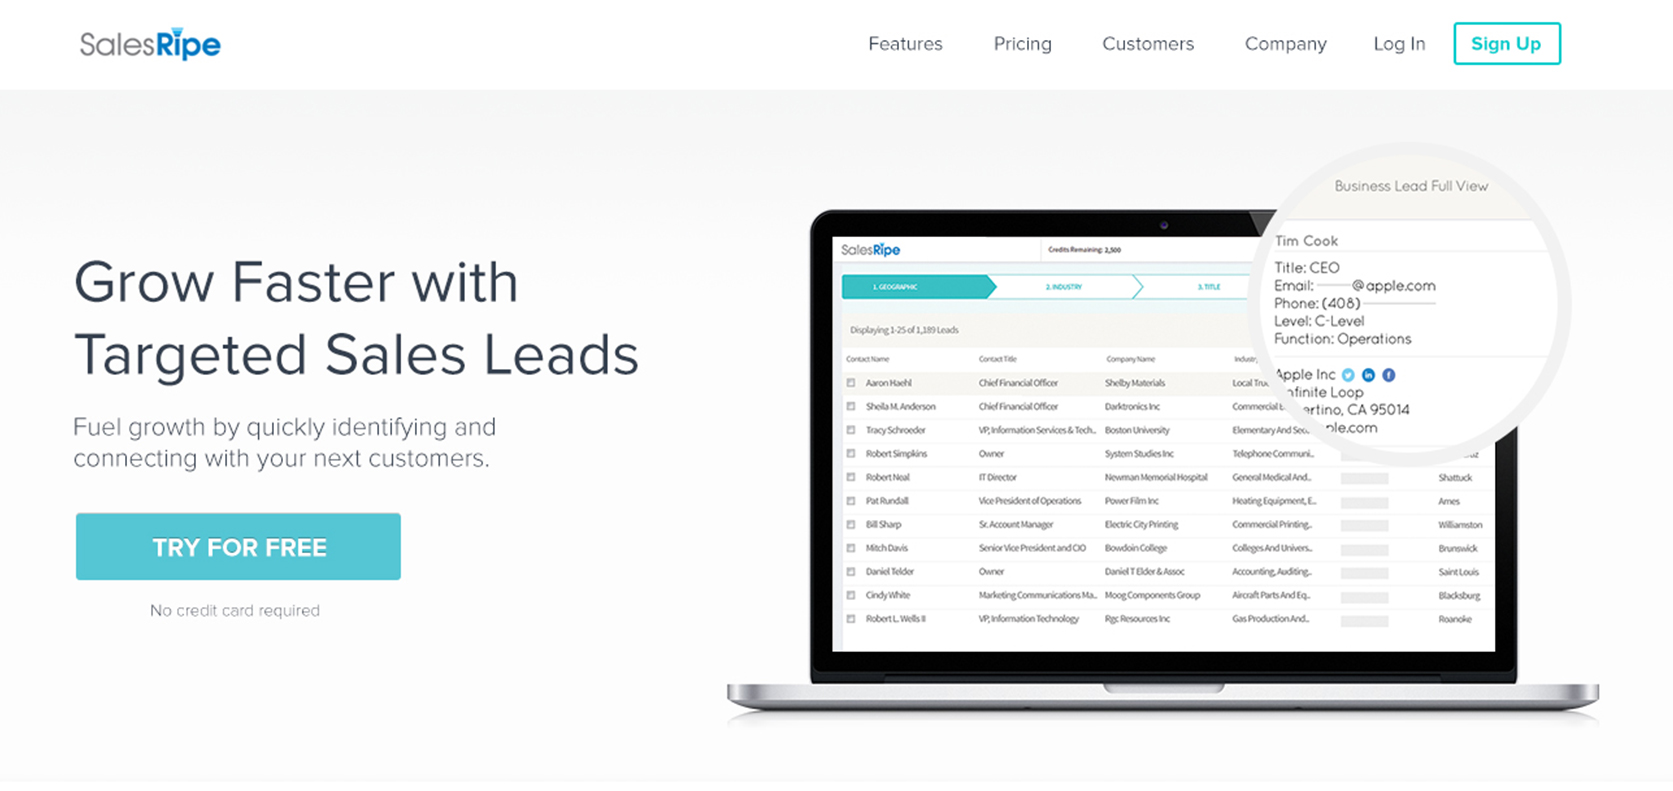 SalesRipe Demo - Grow Faster with Targeted Sales Leads